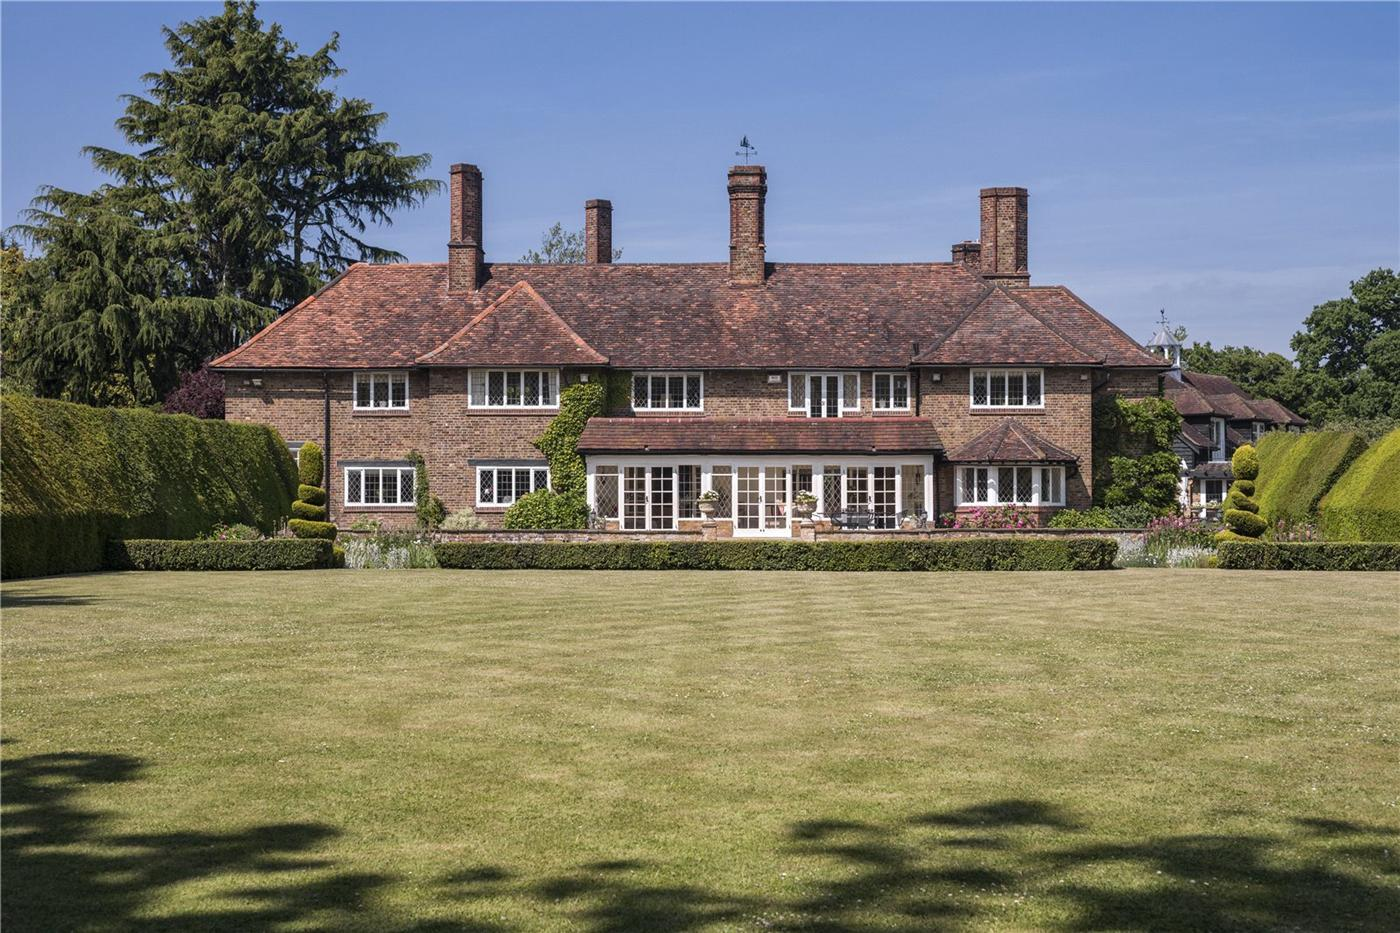 Roger Moore's $7,5 Million Dollar Residence in England 1